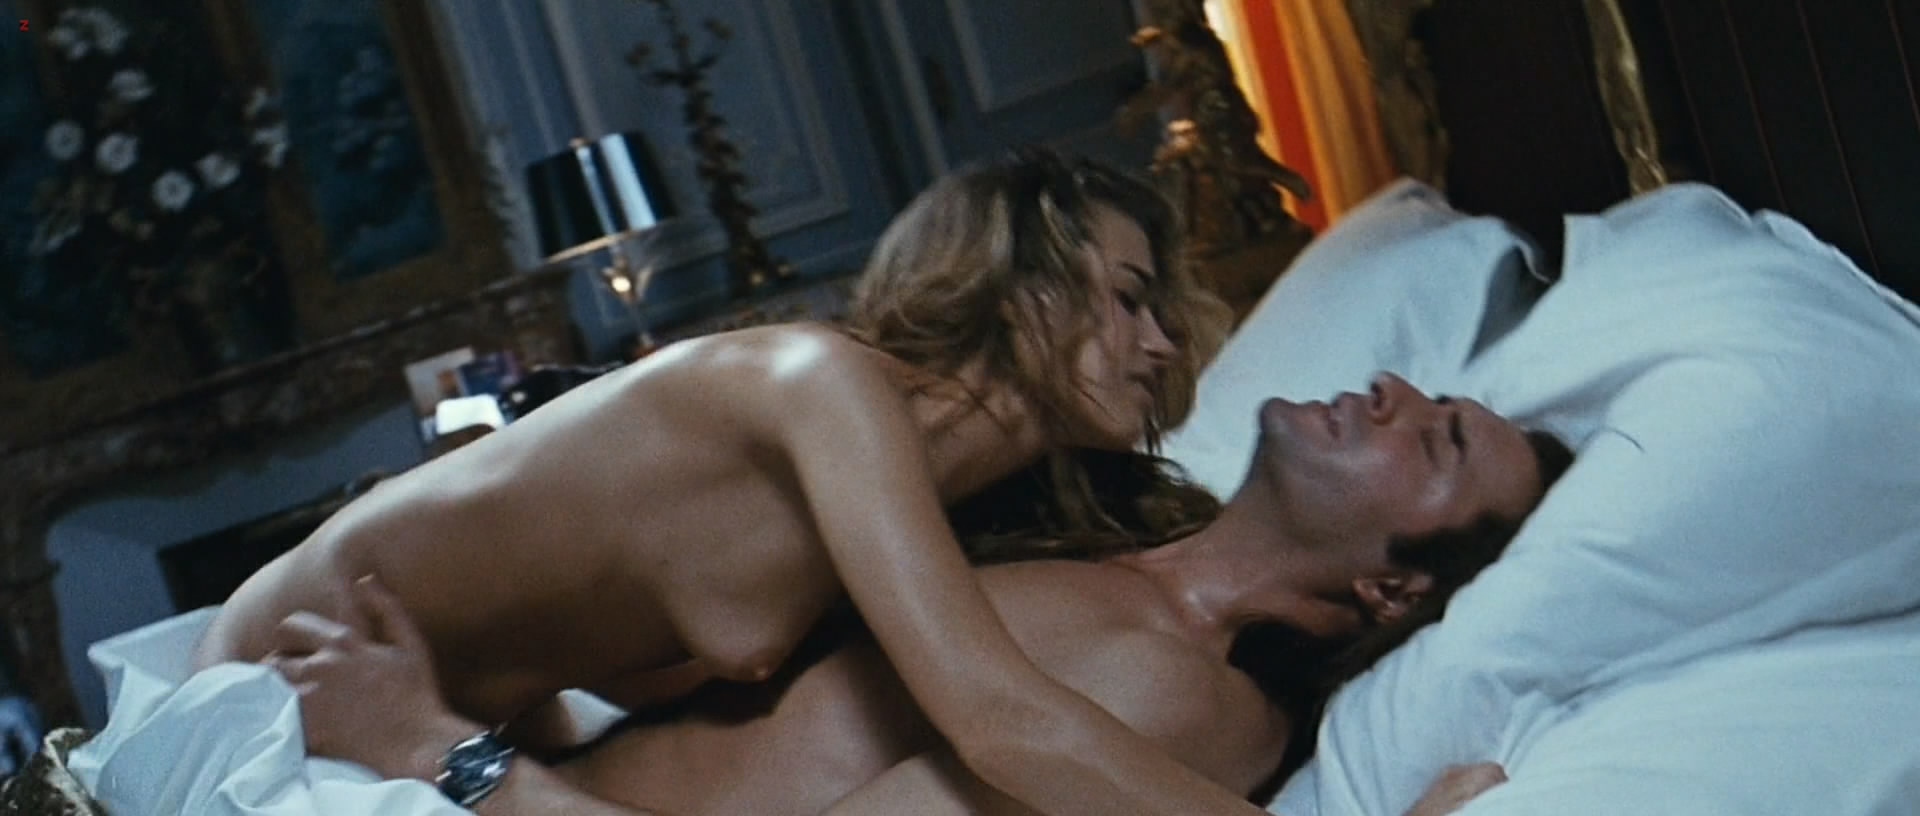 Vahina Giocante nude and some wild sex from 99 francs (2007) hd1080p